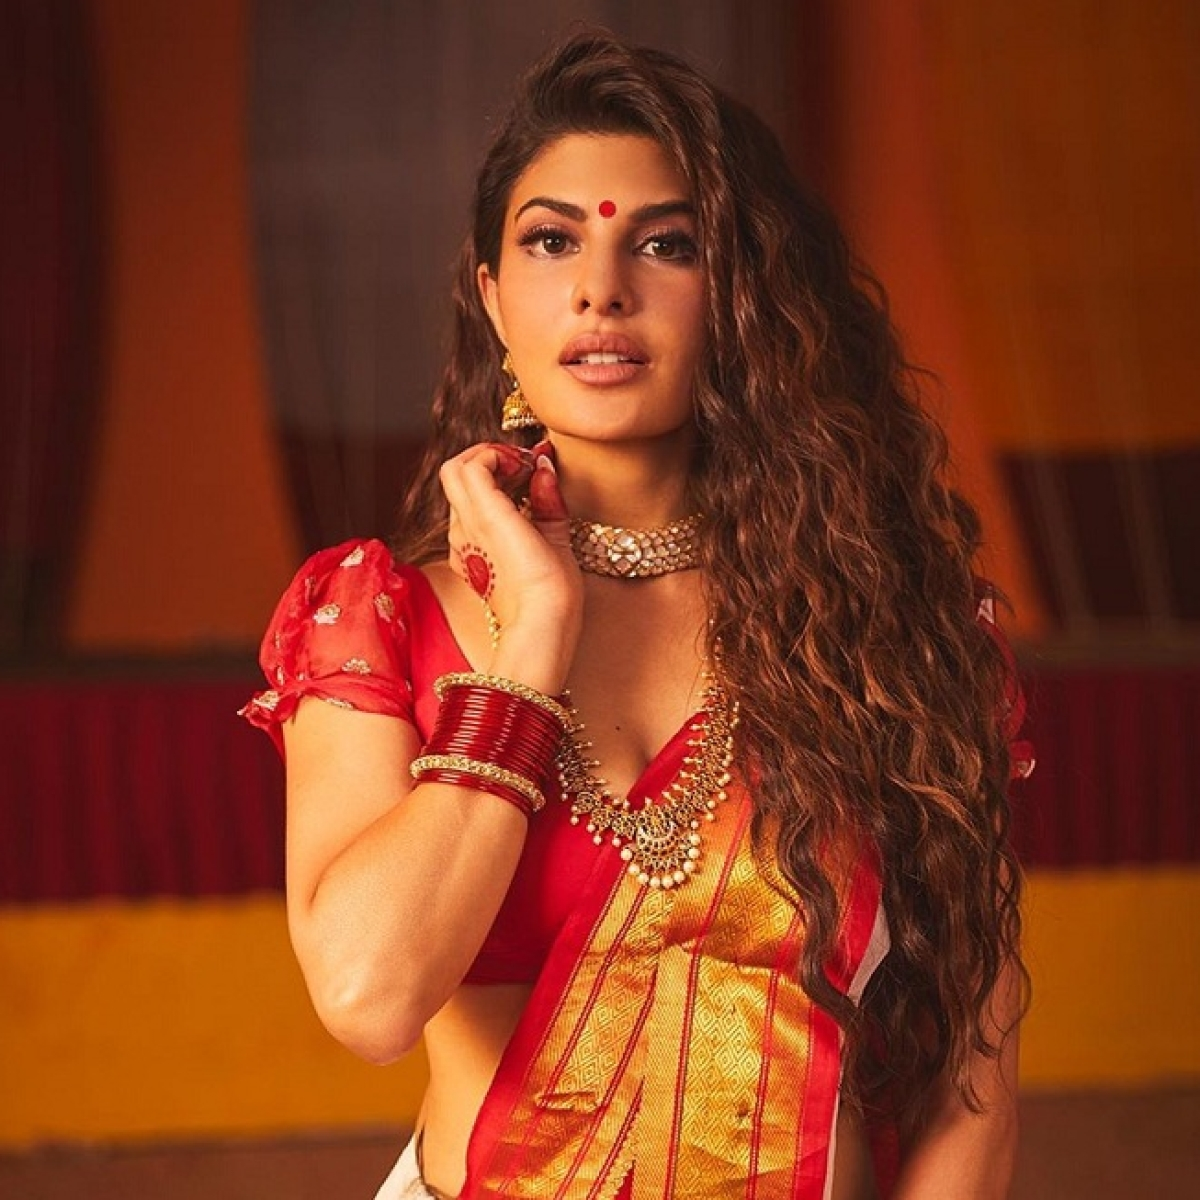 Jacqueline Fernandez wants to be an action icon one day